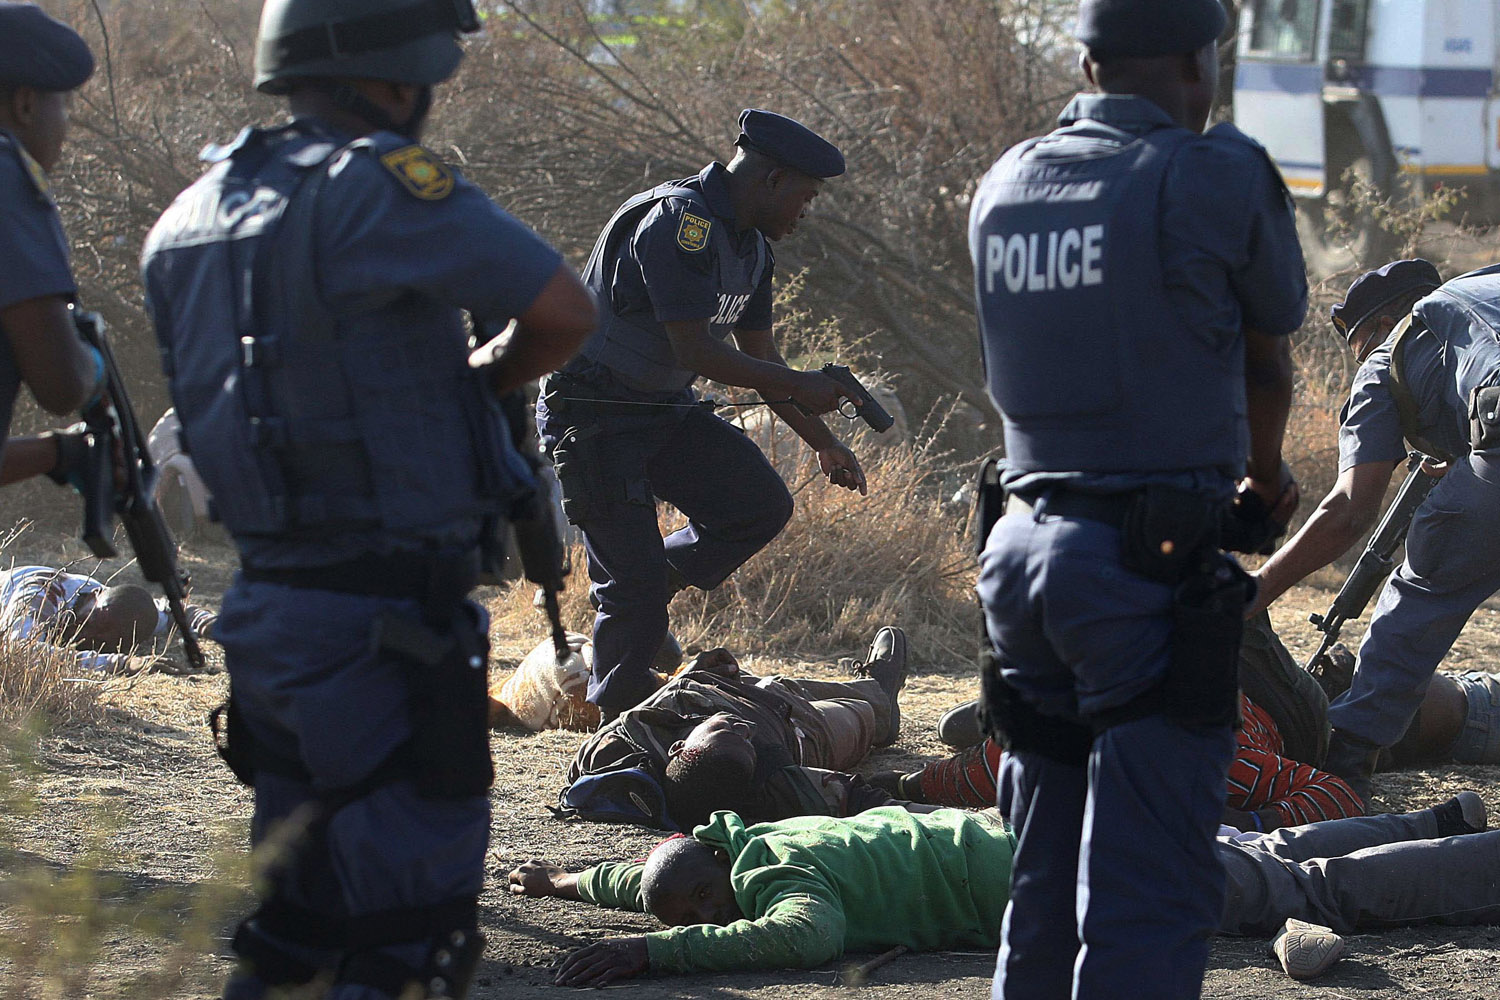 Aug. 16, 2012. Police surround the bodies of striking miners after opening fire on a crowd at the Lonmin Platinum Mine near Rustenburg, South Africa.